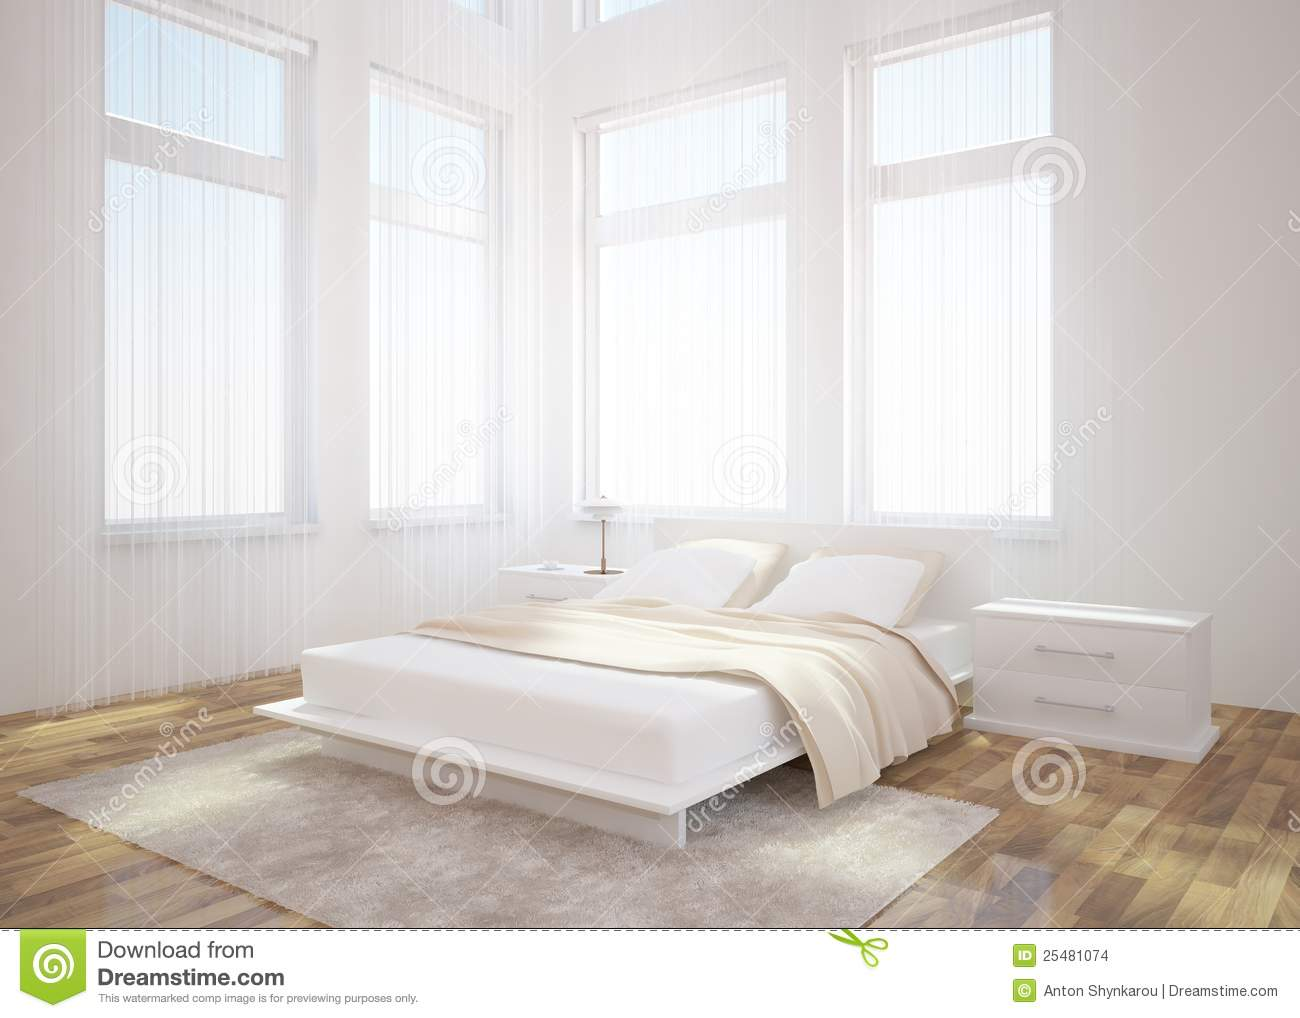 Conception int rieure de chambre coucher blanche images for Chambre a coucher blanche